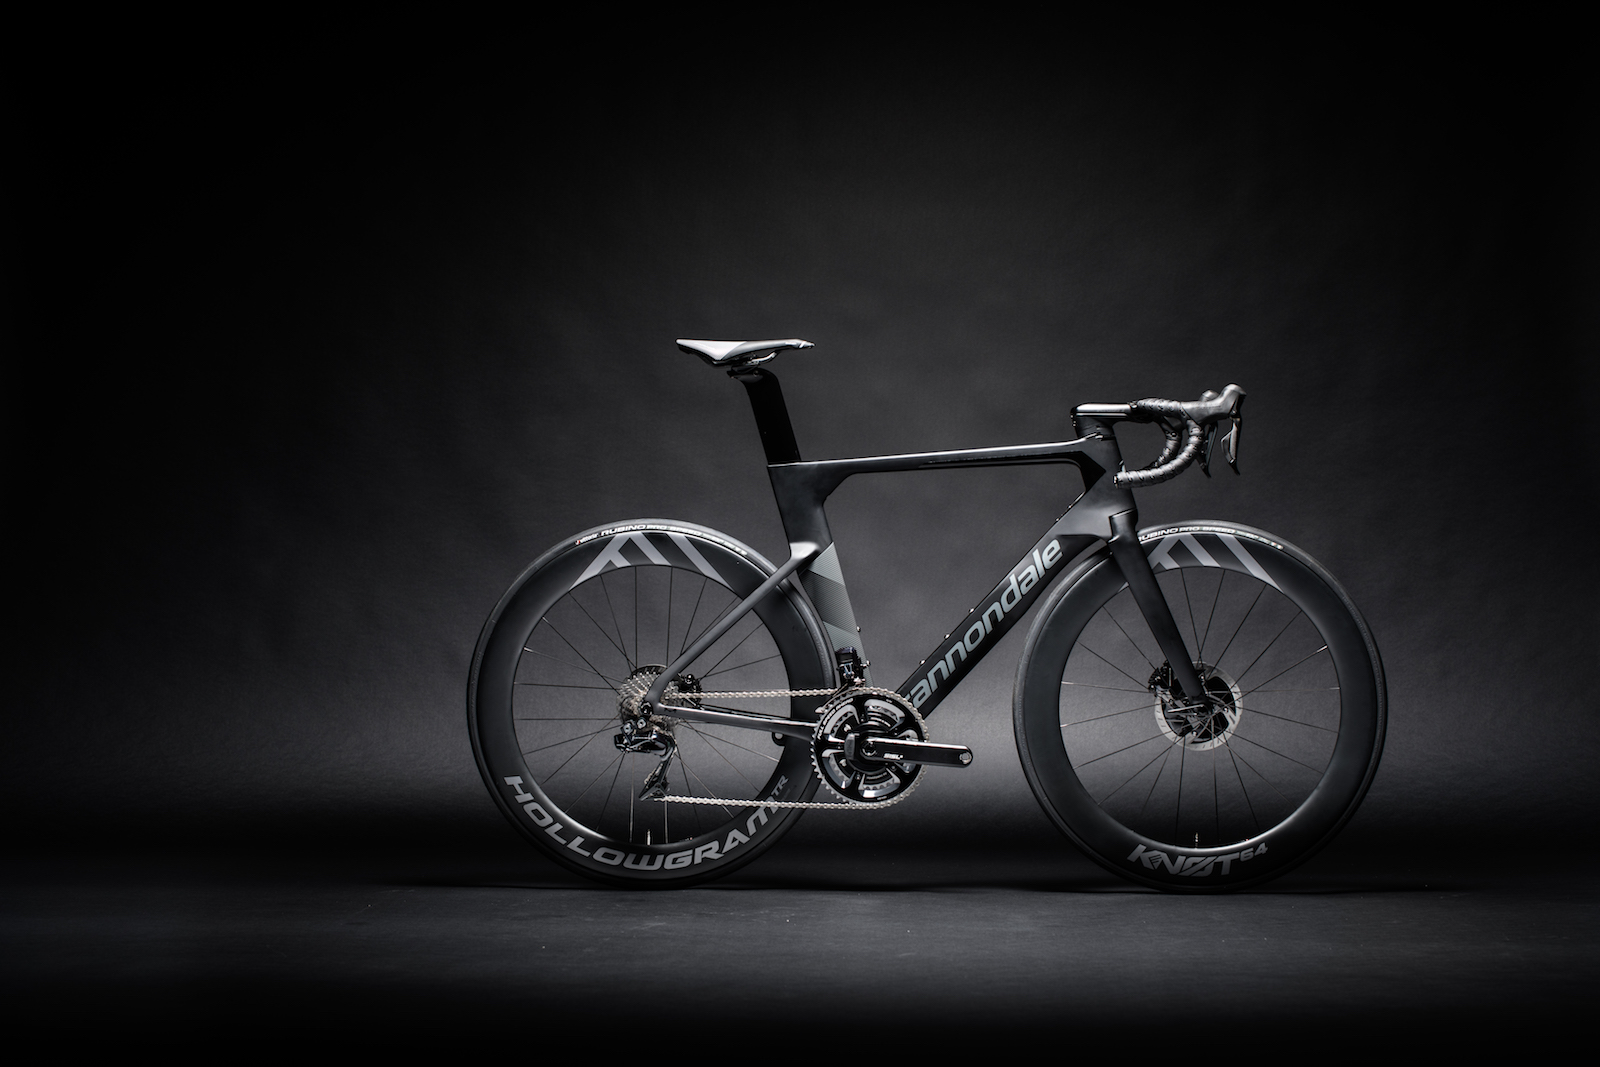 Cannondale Systemsix Is The Fastest Road Bike Bike Hugger